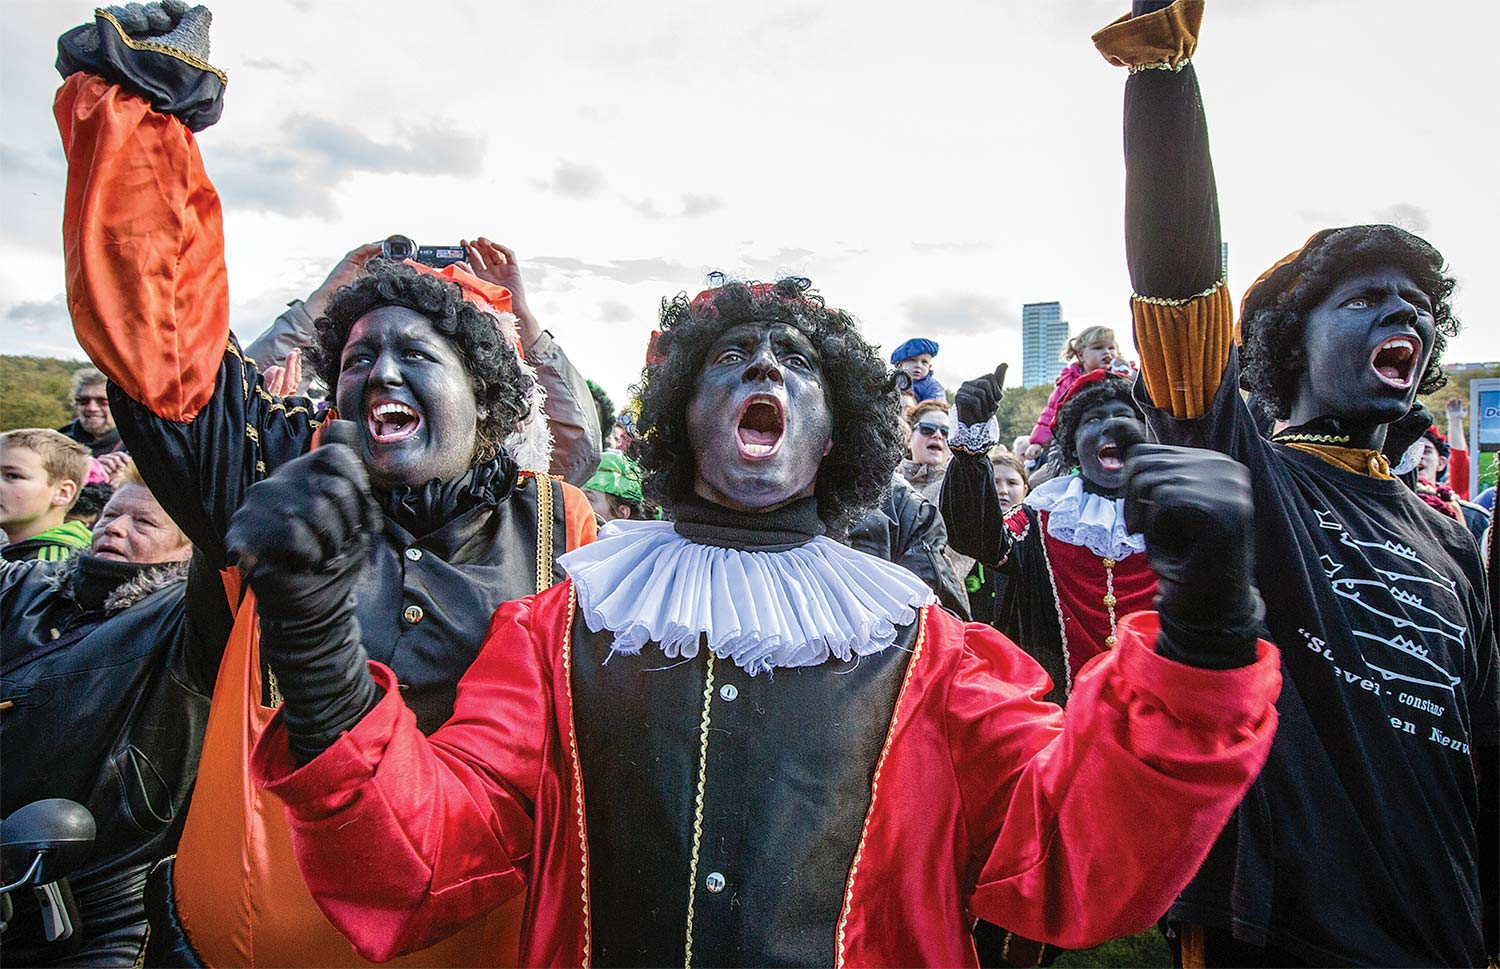 On October 26, 2013, several hundred people demonstrated at the Malieveld in The Hague to keep Zwarte Piet as part of the traditional Dutch Sinterklaas  celebration. The demonstration was an outgrowth  of a Facebook page dedicated to saving Zwarte Piet. (Bart Maat / Hollandse Hoogte / Redux)